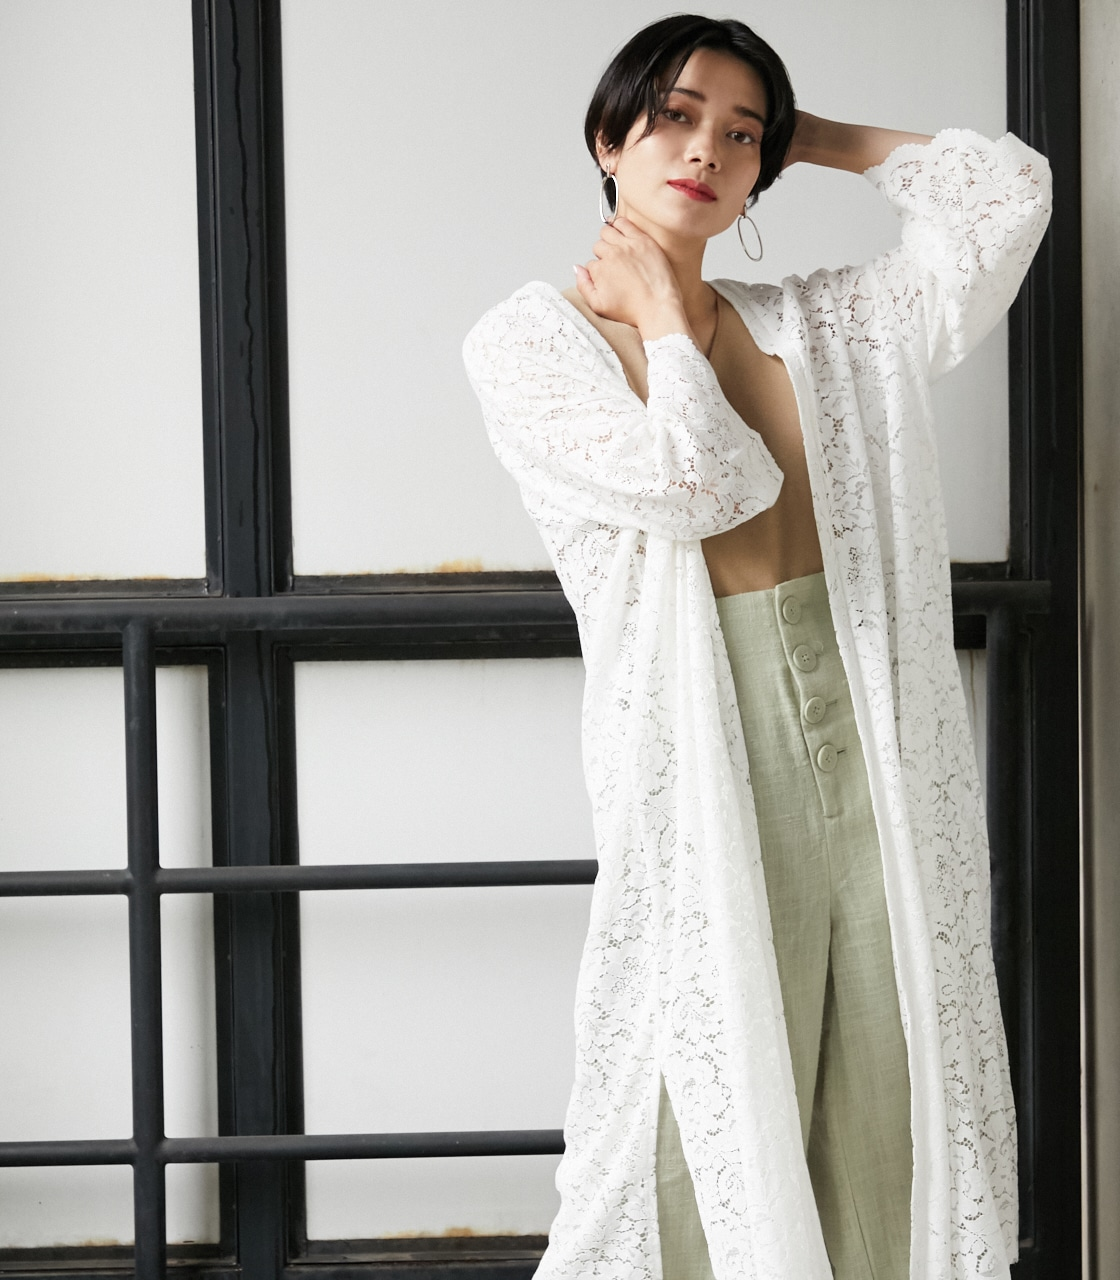 SCALLOP LACE LONG GOWN/スカロップレースロングガウン 詳細画像 O/WHT 11